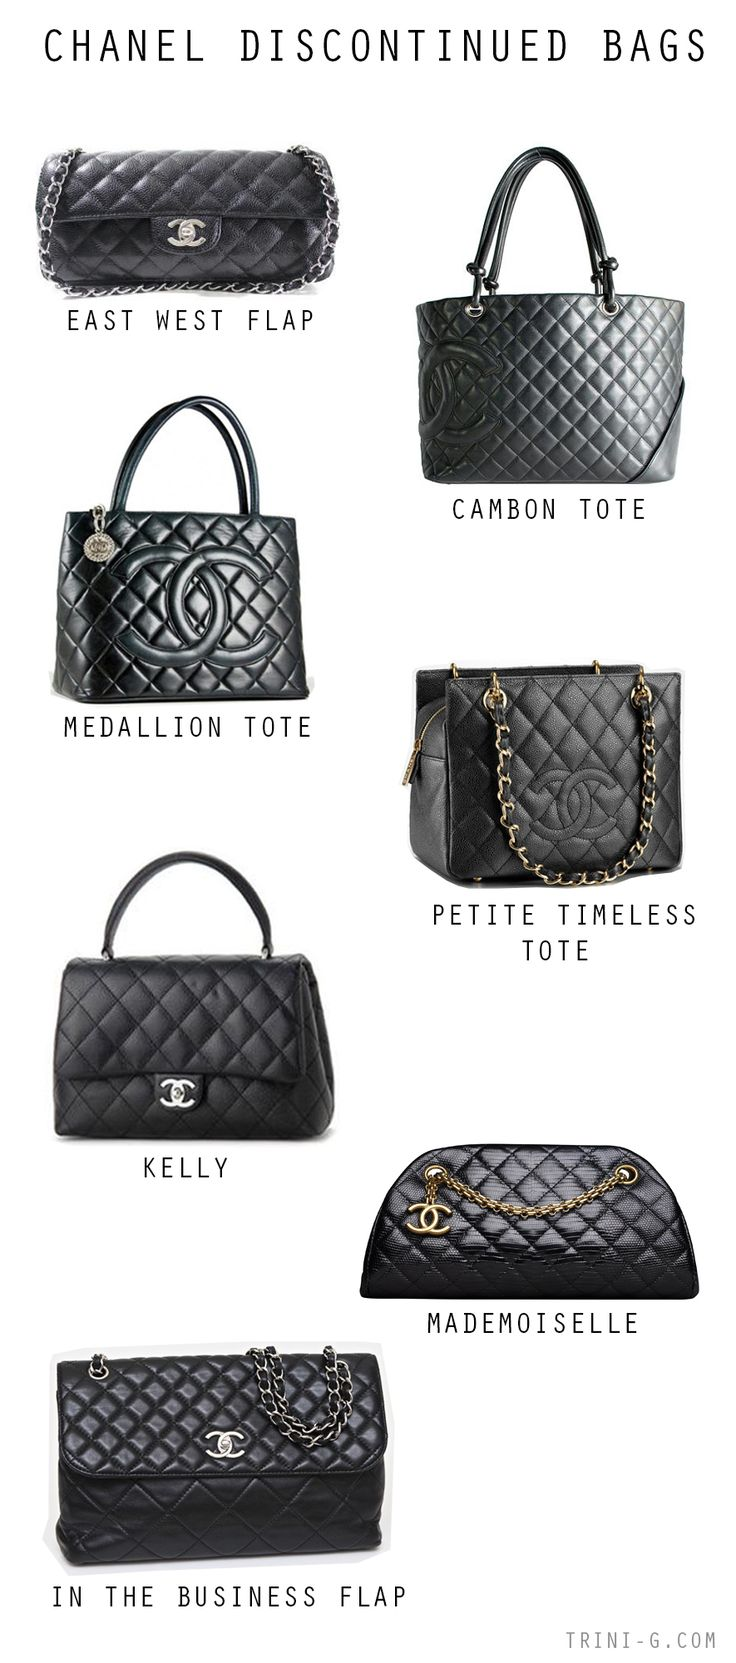 Trini blog | Chanel discontinued bags Clothing, Shoes & Jewelry - women's handbags & wallets - http://amzn.to/2j9xWYI